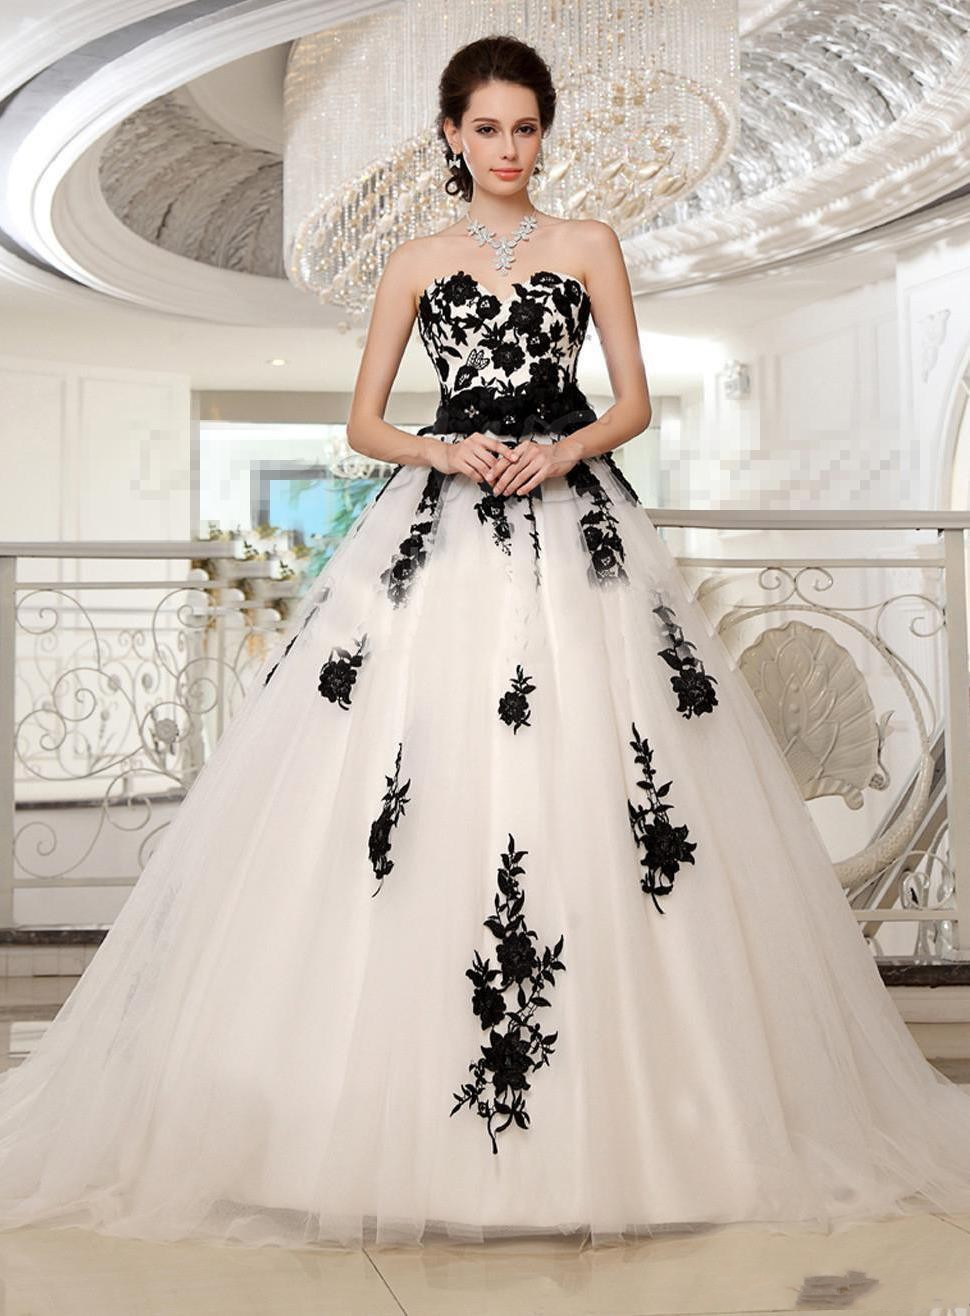 Aliexpress buy black white champagne wedding dresses aliexpress buy black white champagne wedding dresses princess plus size lace appliqued lace up back wedding gowns custom made sweep train from ombrellifo Choice Image